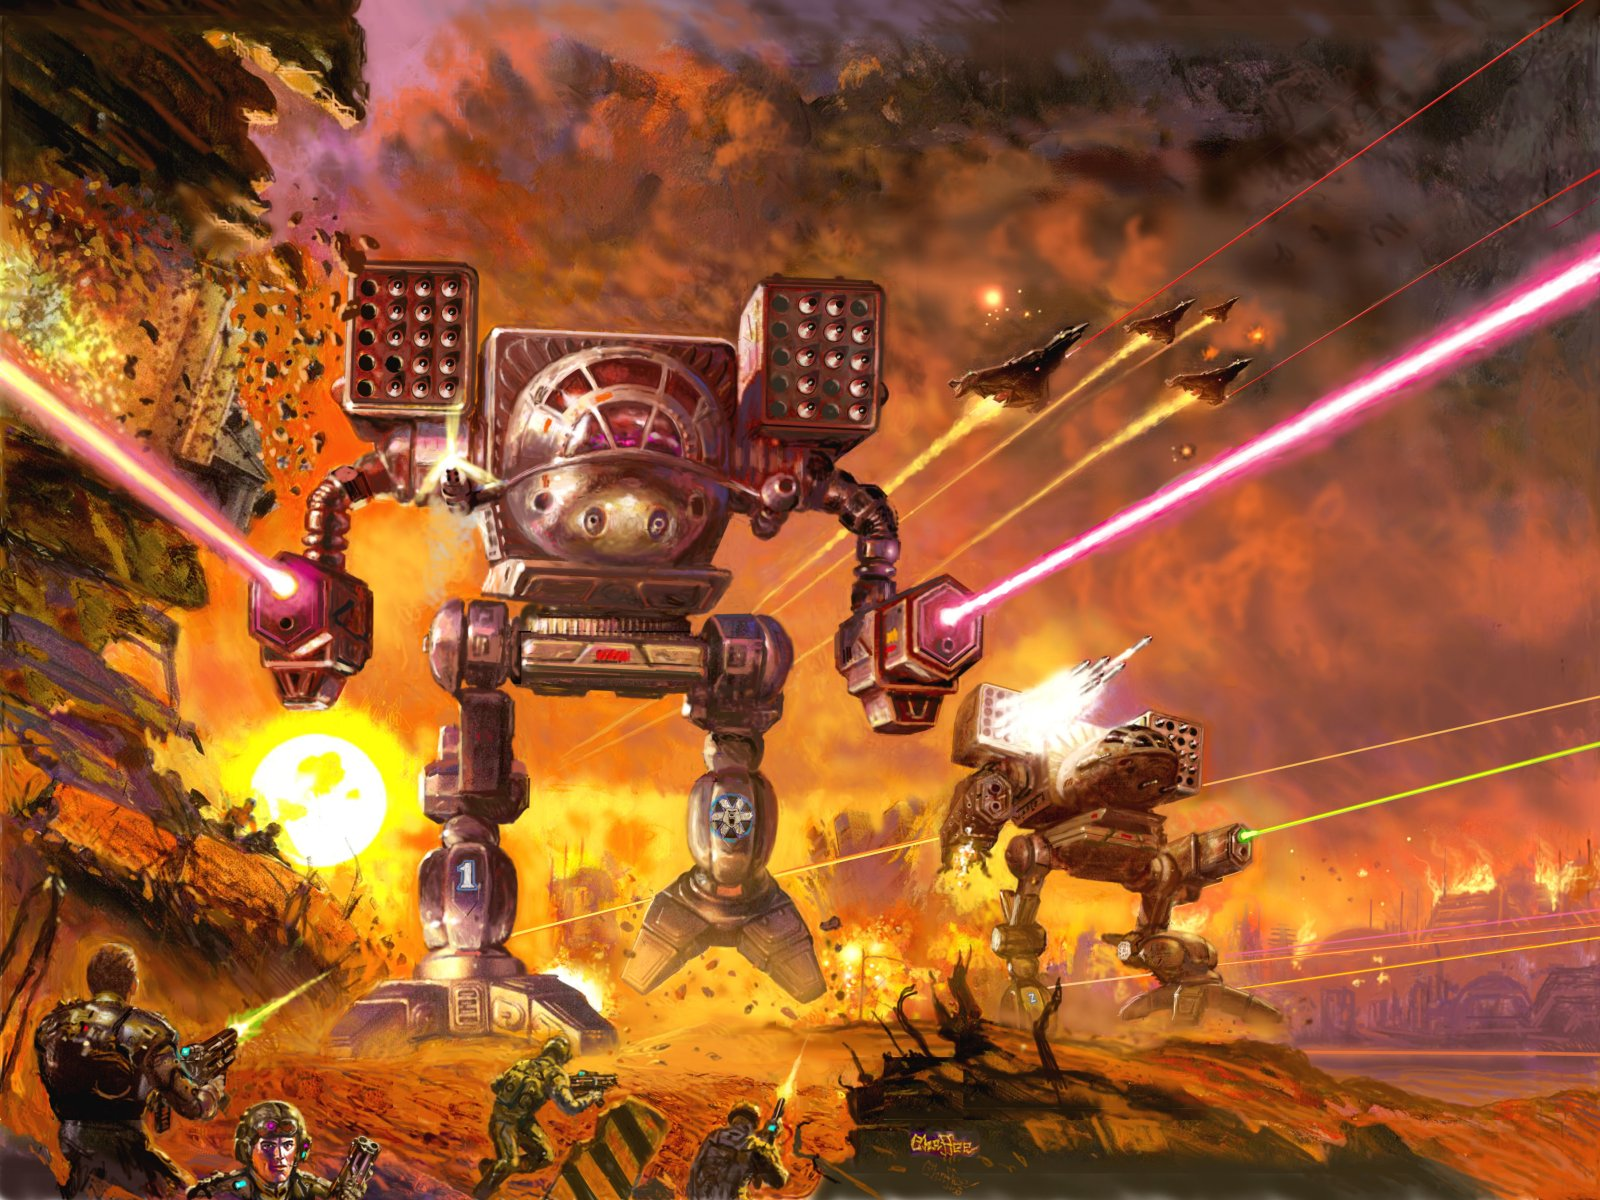 17 MechWarrior HD Wallpapers Backgrounds 1600x1200